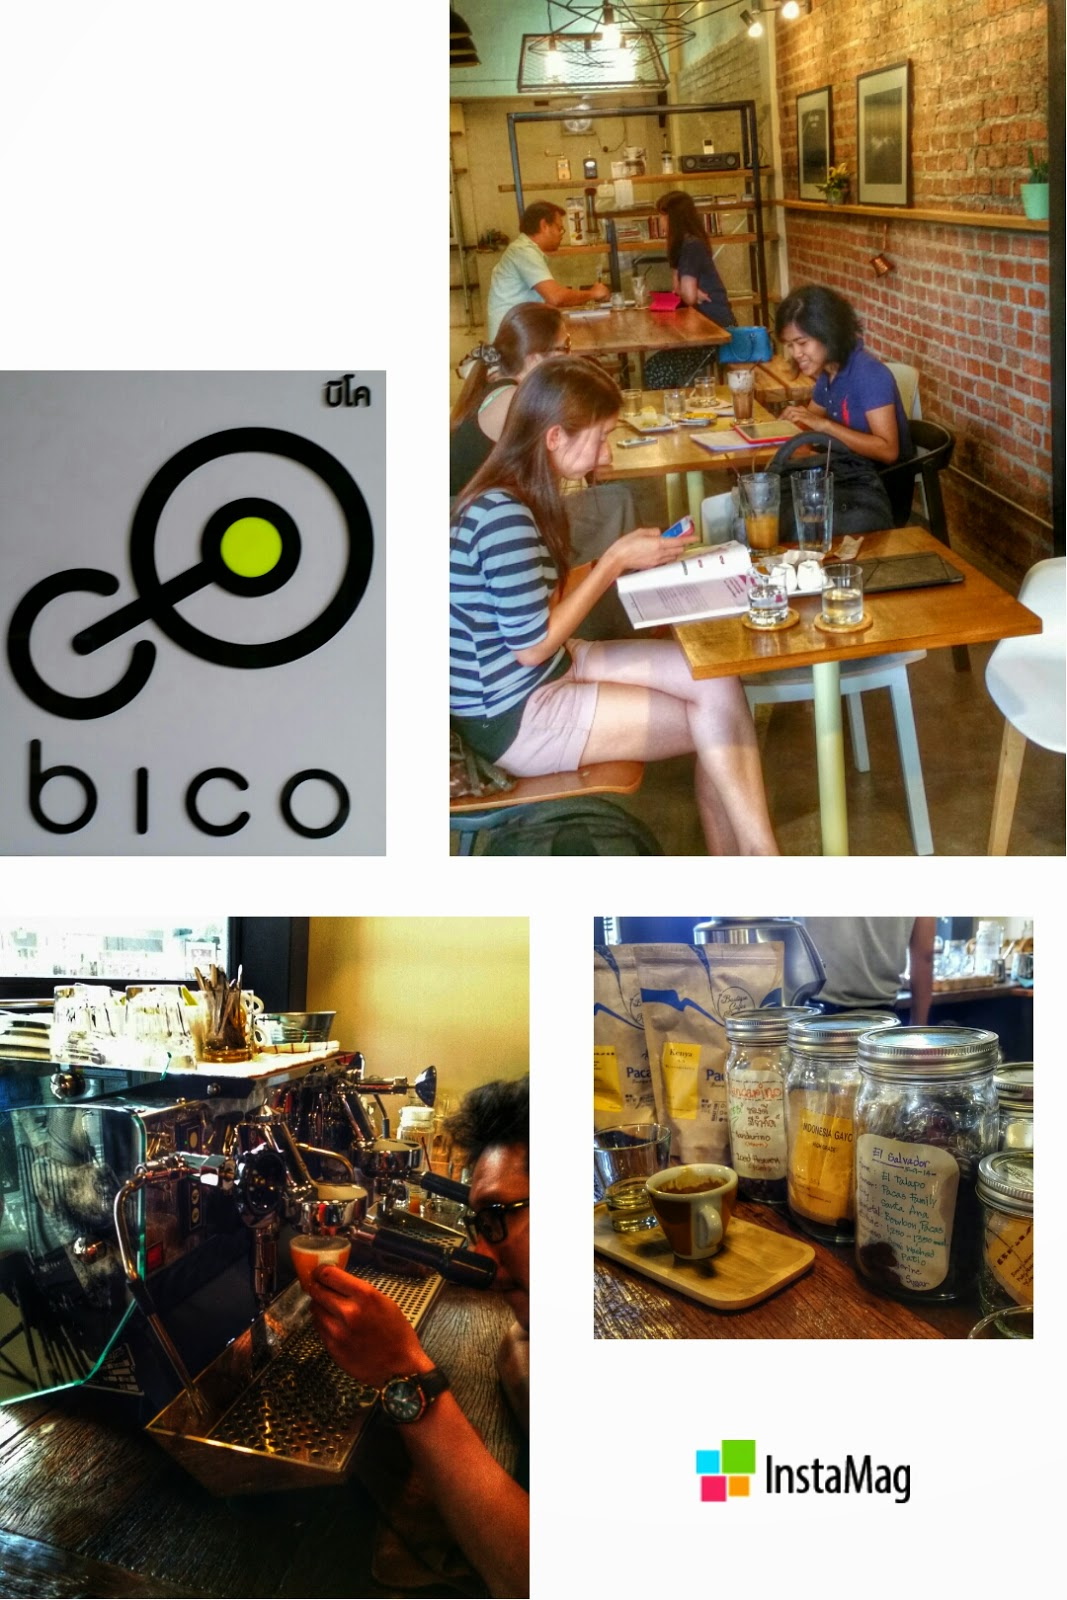 BICO Urban Bicycle & Cafe @ THE SCENE